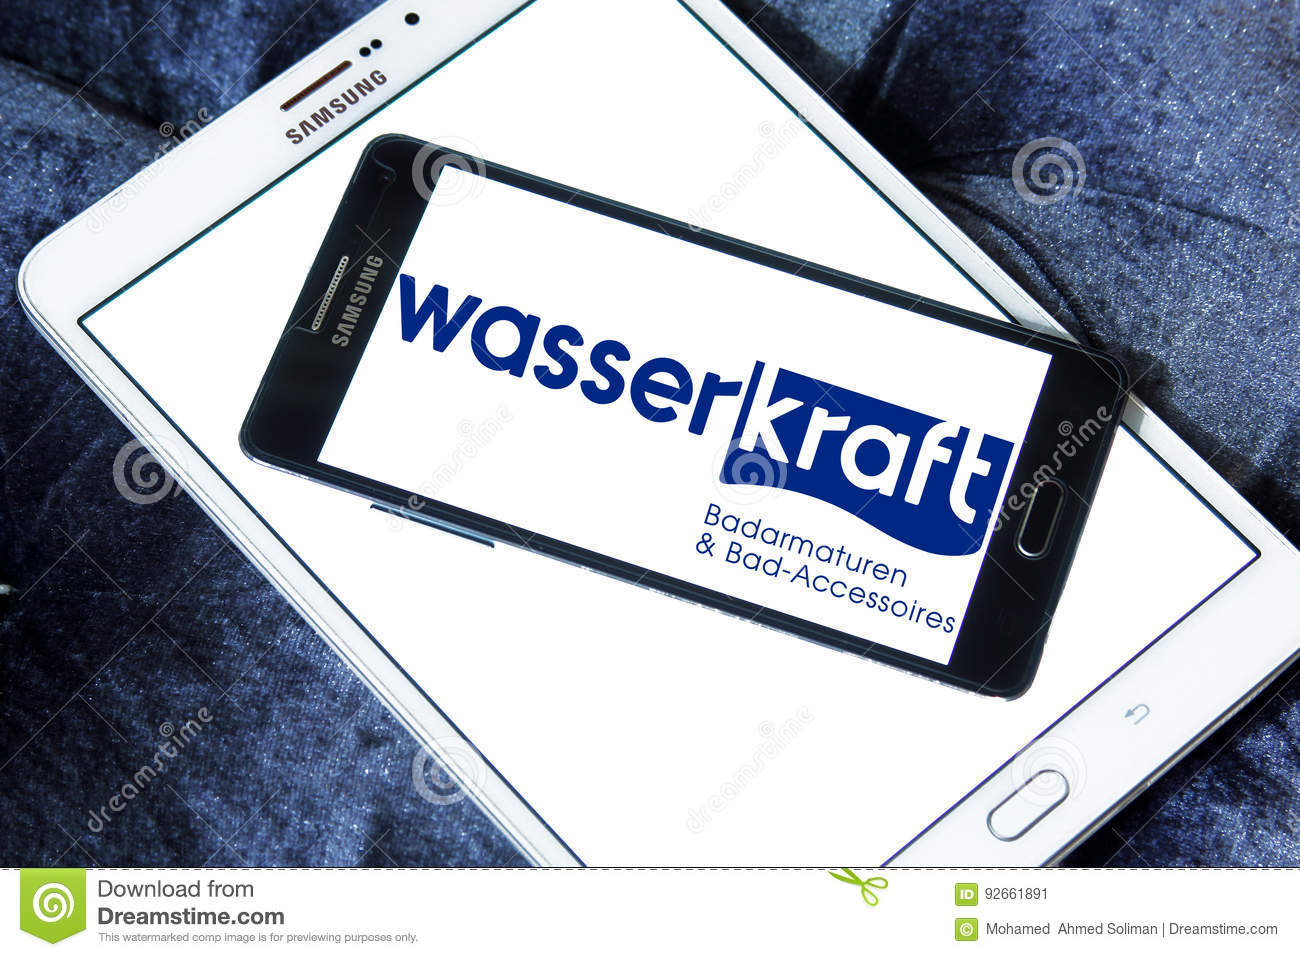 Wasser kraft company logo editorial photo. Image of business - 92661891